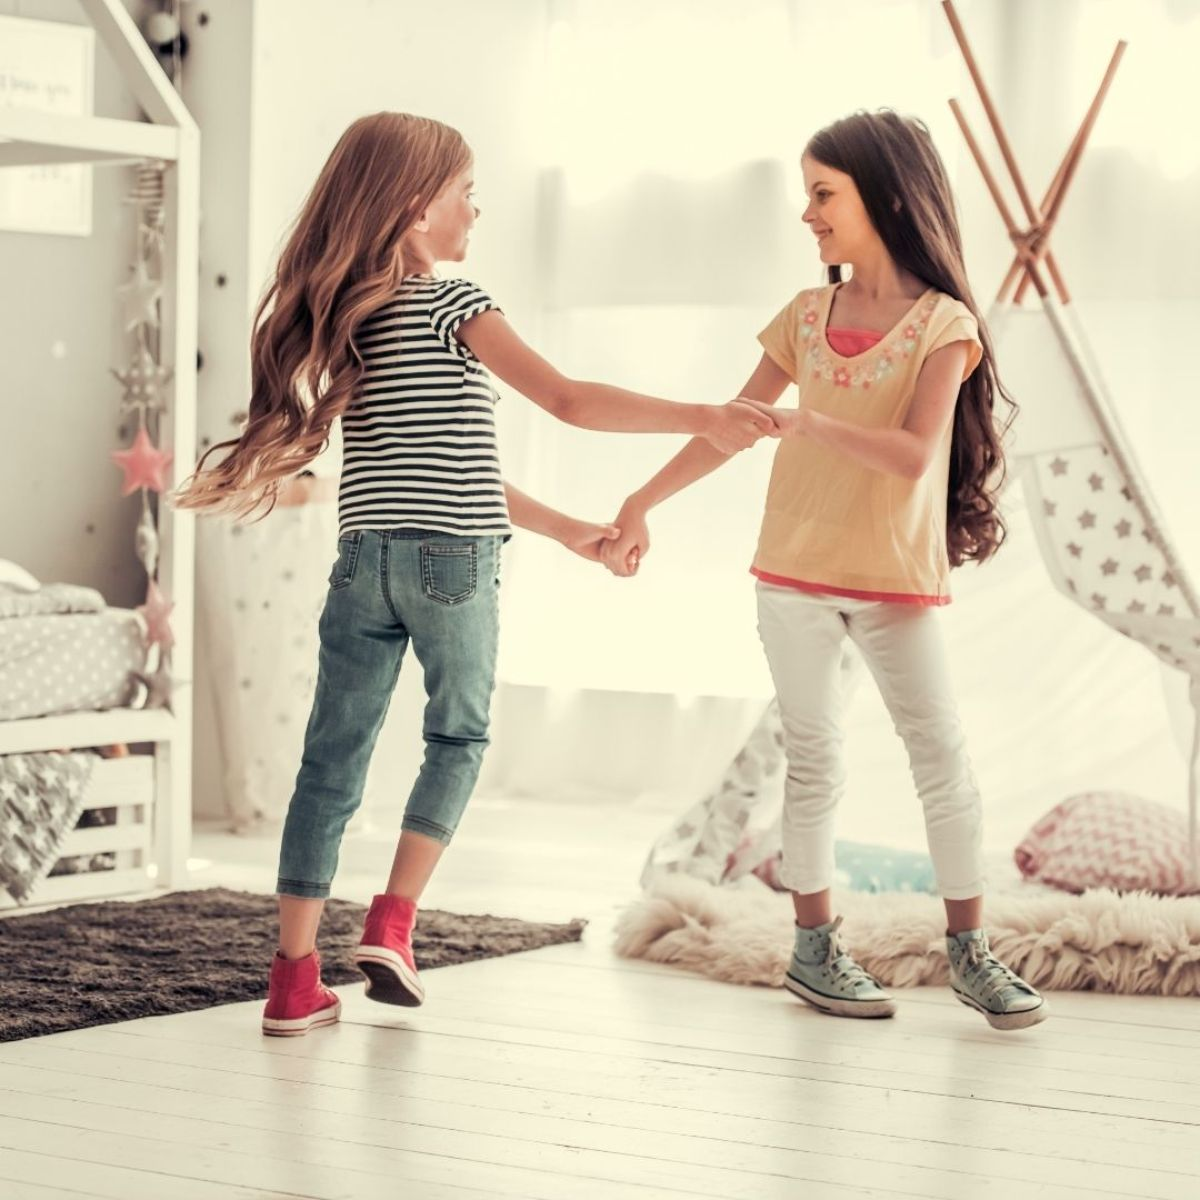 two girls dance around in a room holding hands in front of a teepee and bedframe